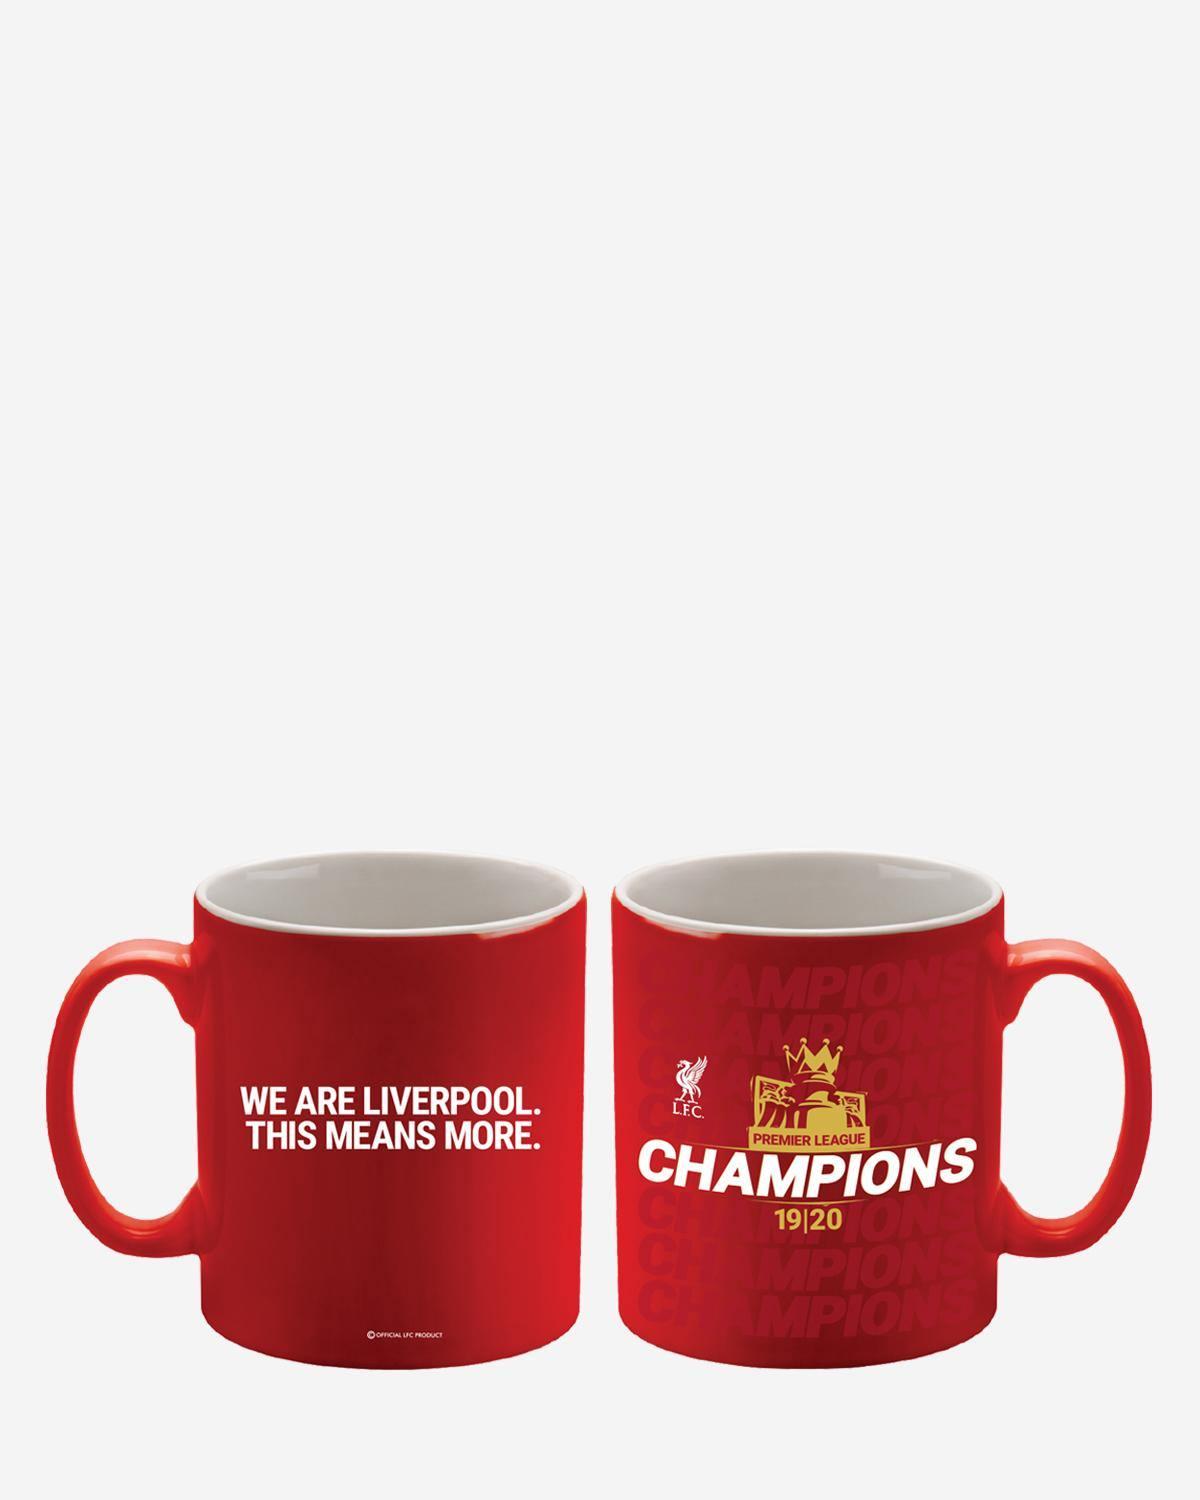 Liverpool FC 2019/20 Premier League Champions Ceramic Mug